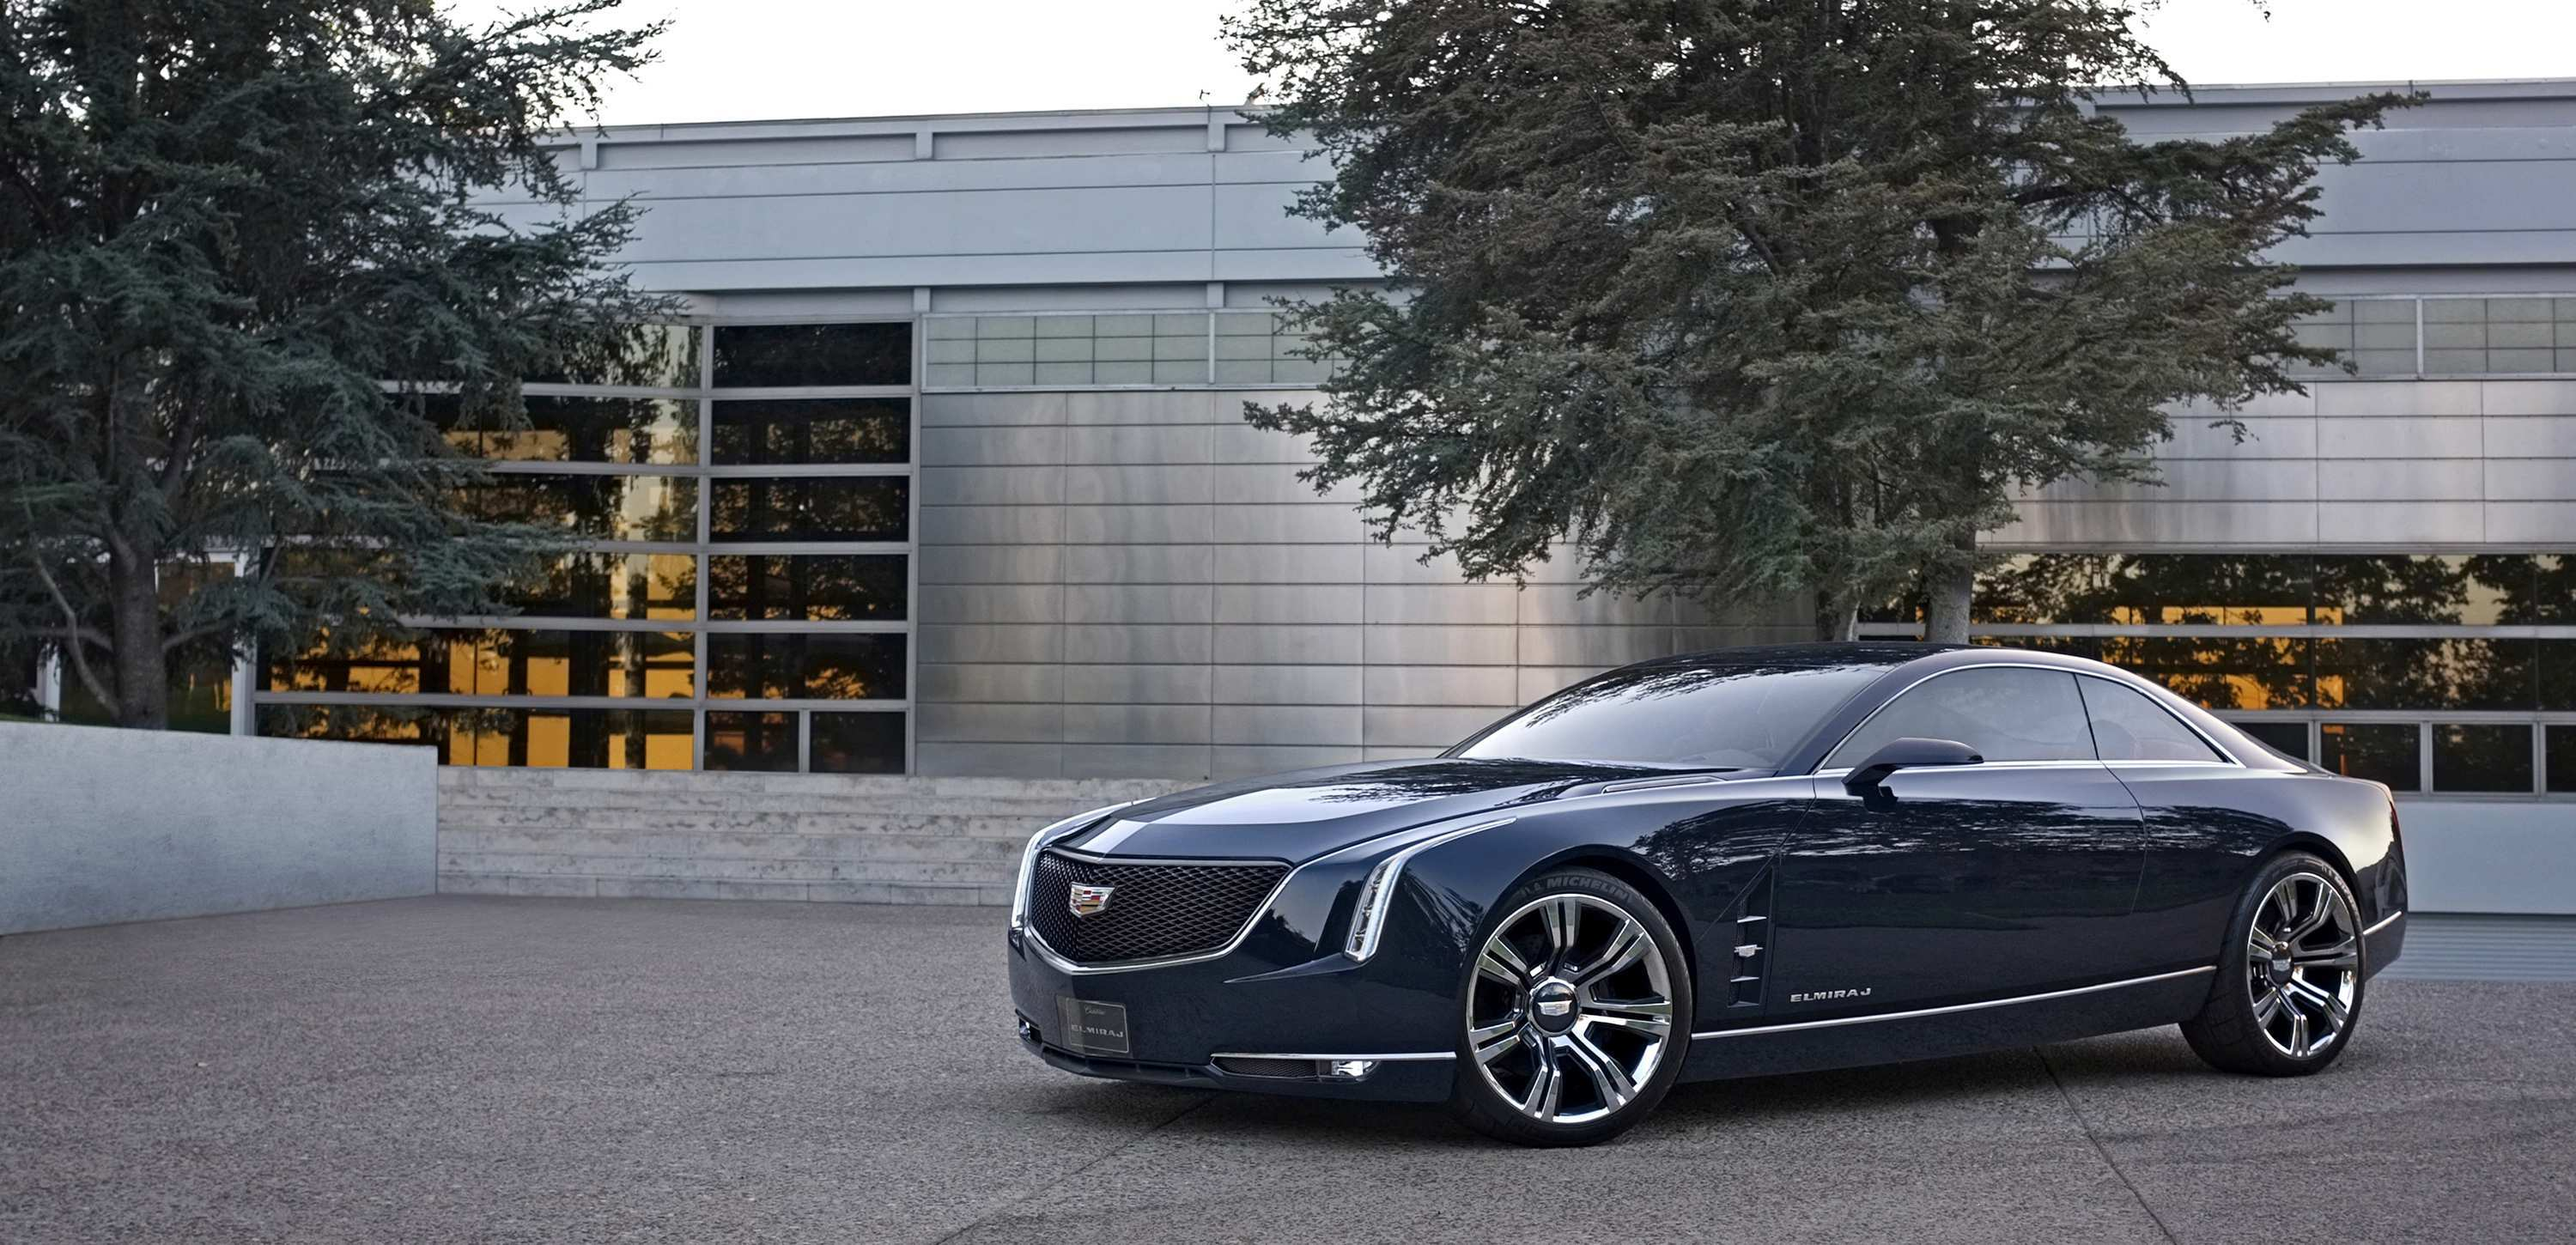 26 All New Elmiraj Cadillac Price Performance and New Engine for Elmiraj Cadillac Price